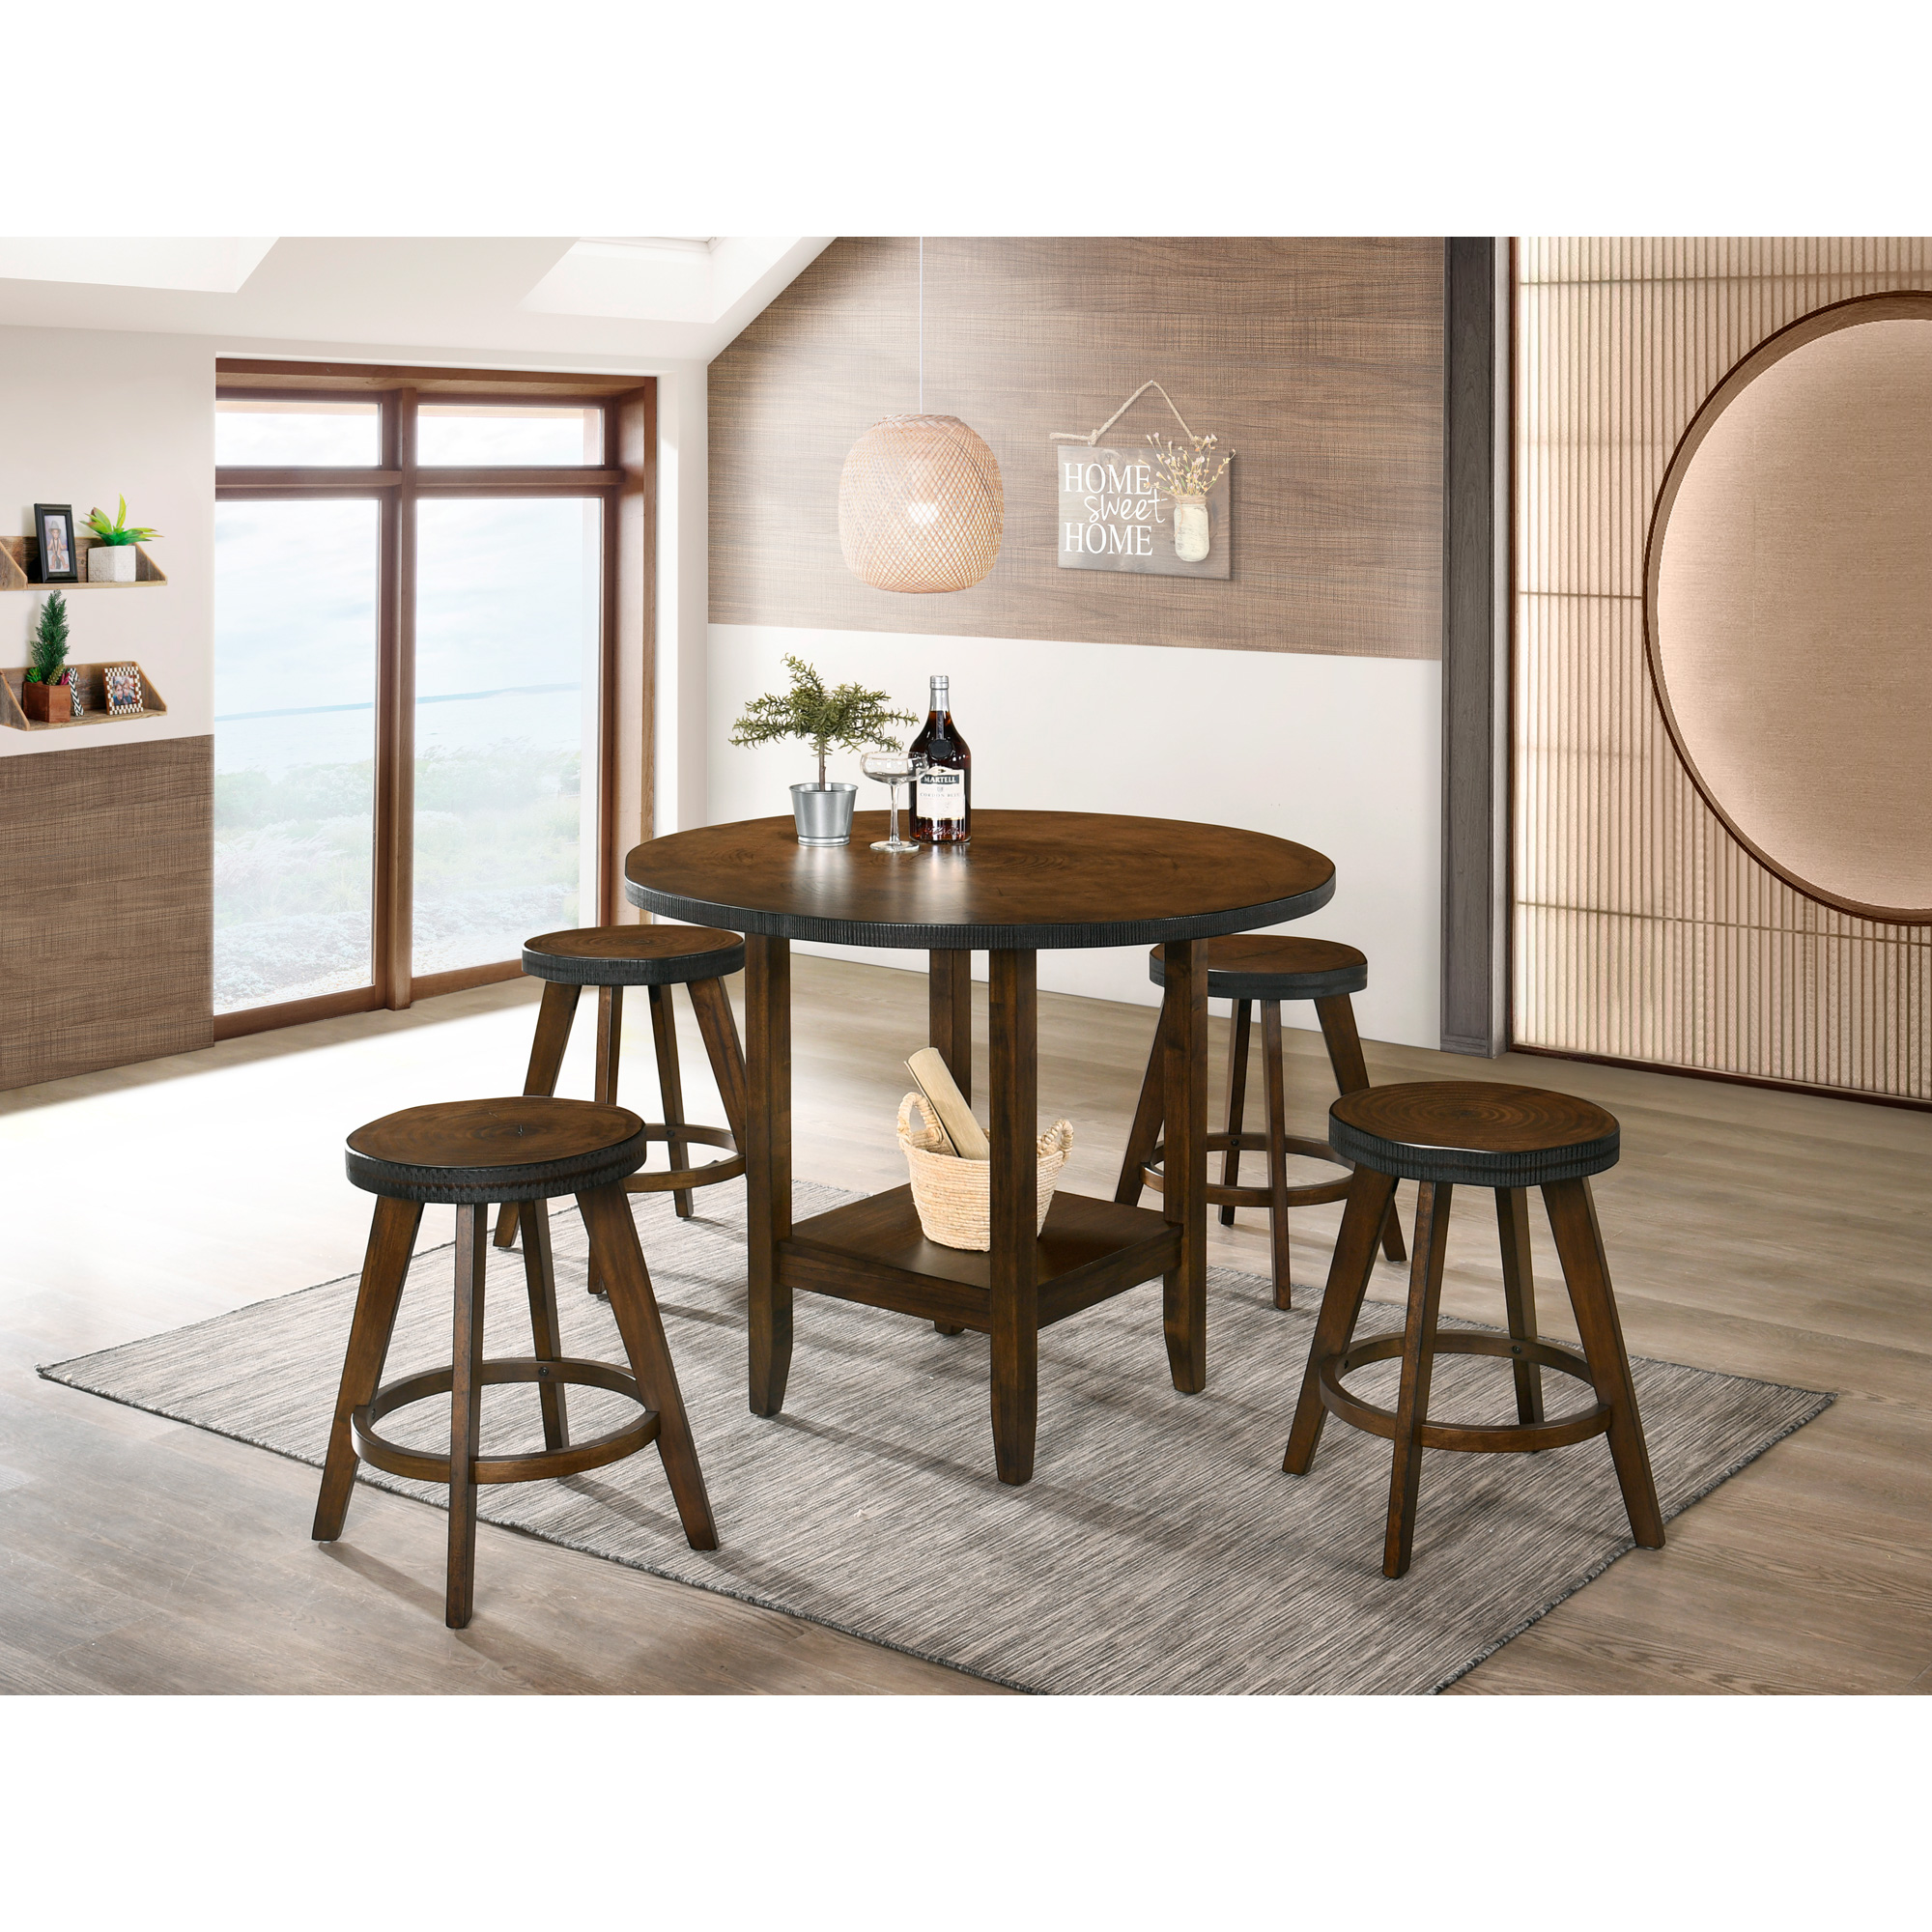 Lifestyle Enterprise | Asher Rustic Walnut 3 Piece Counter Dining Set